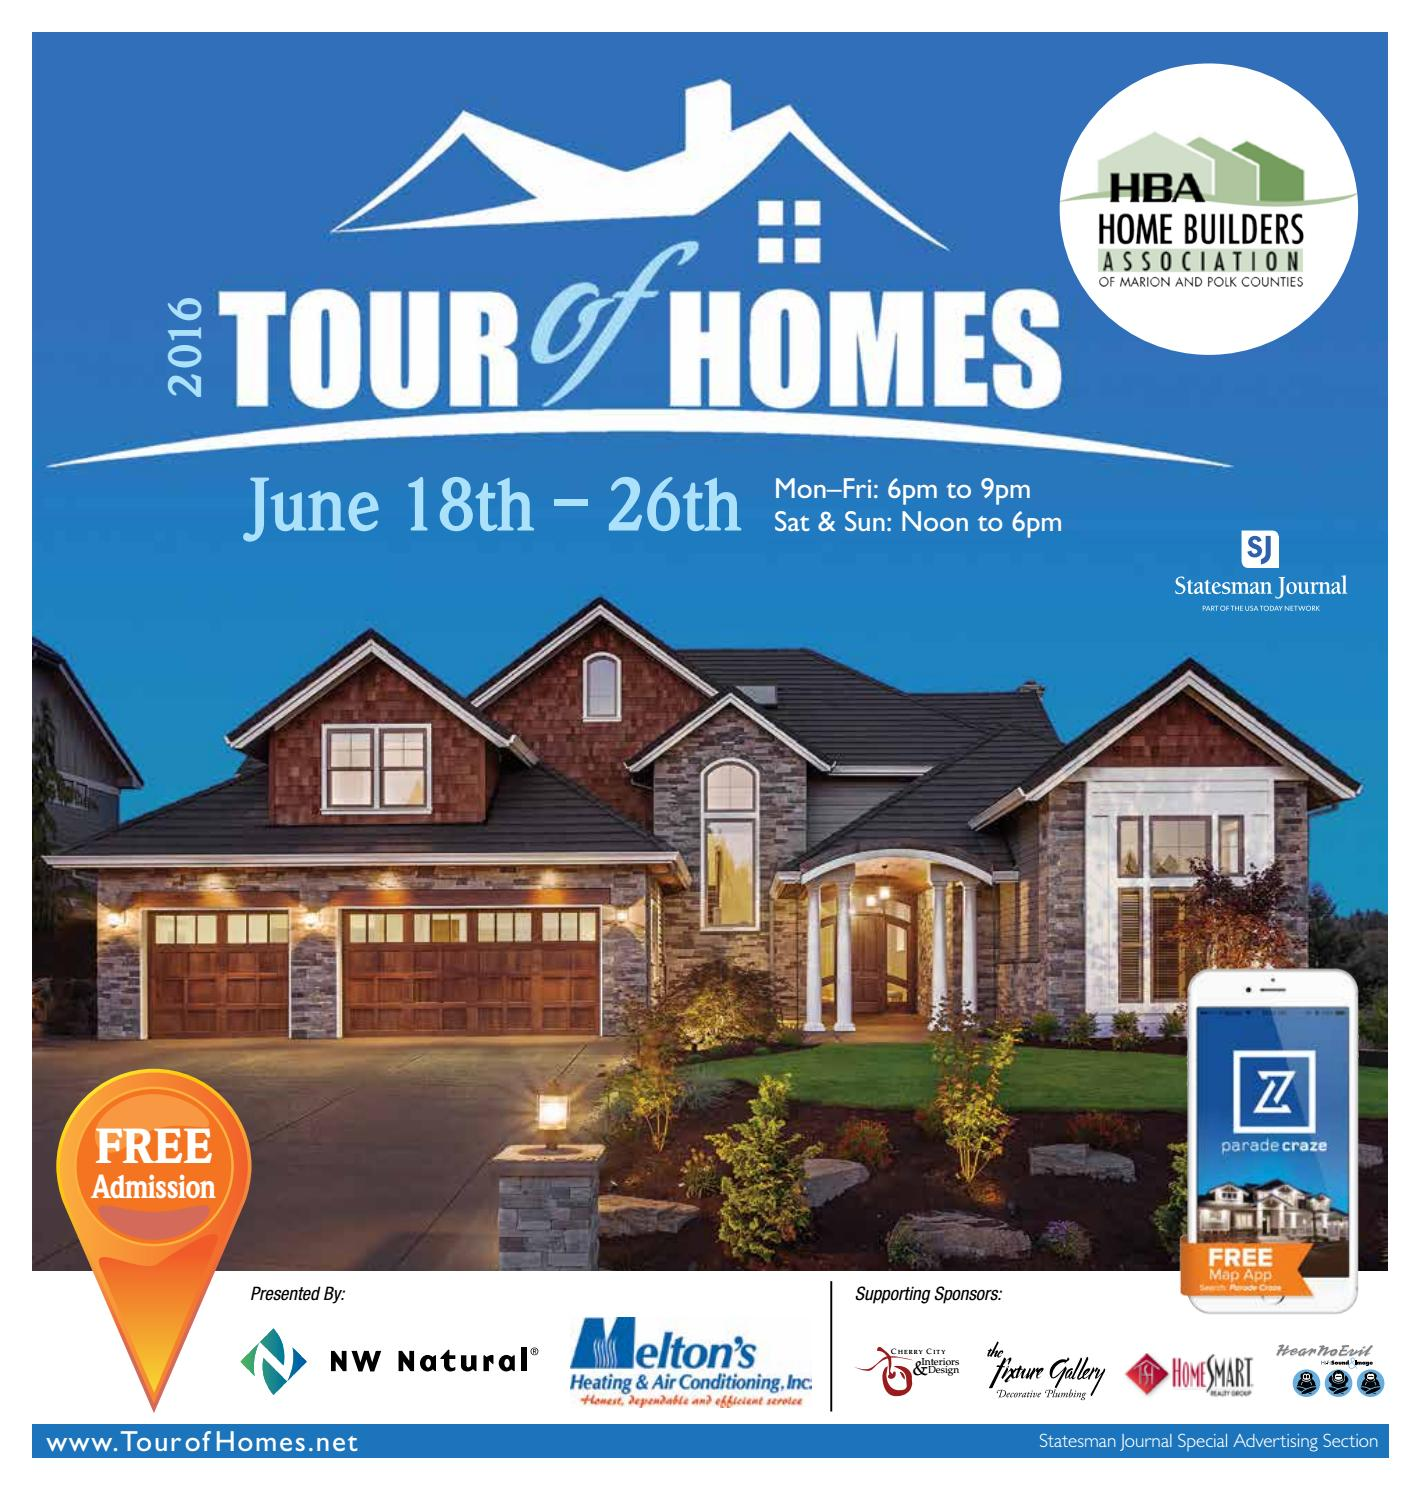 2016 tour of homes marion and polk counties oregon by statesman